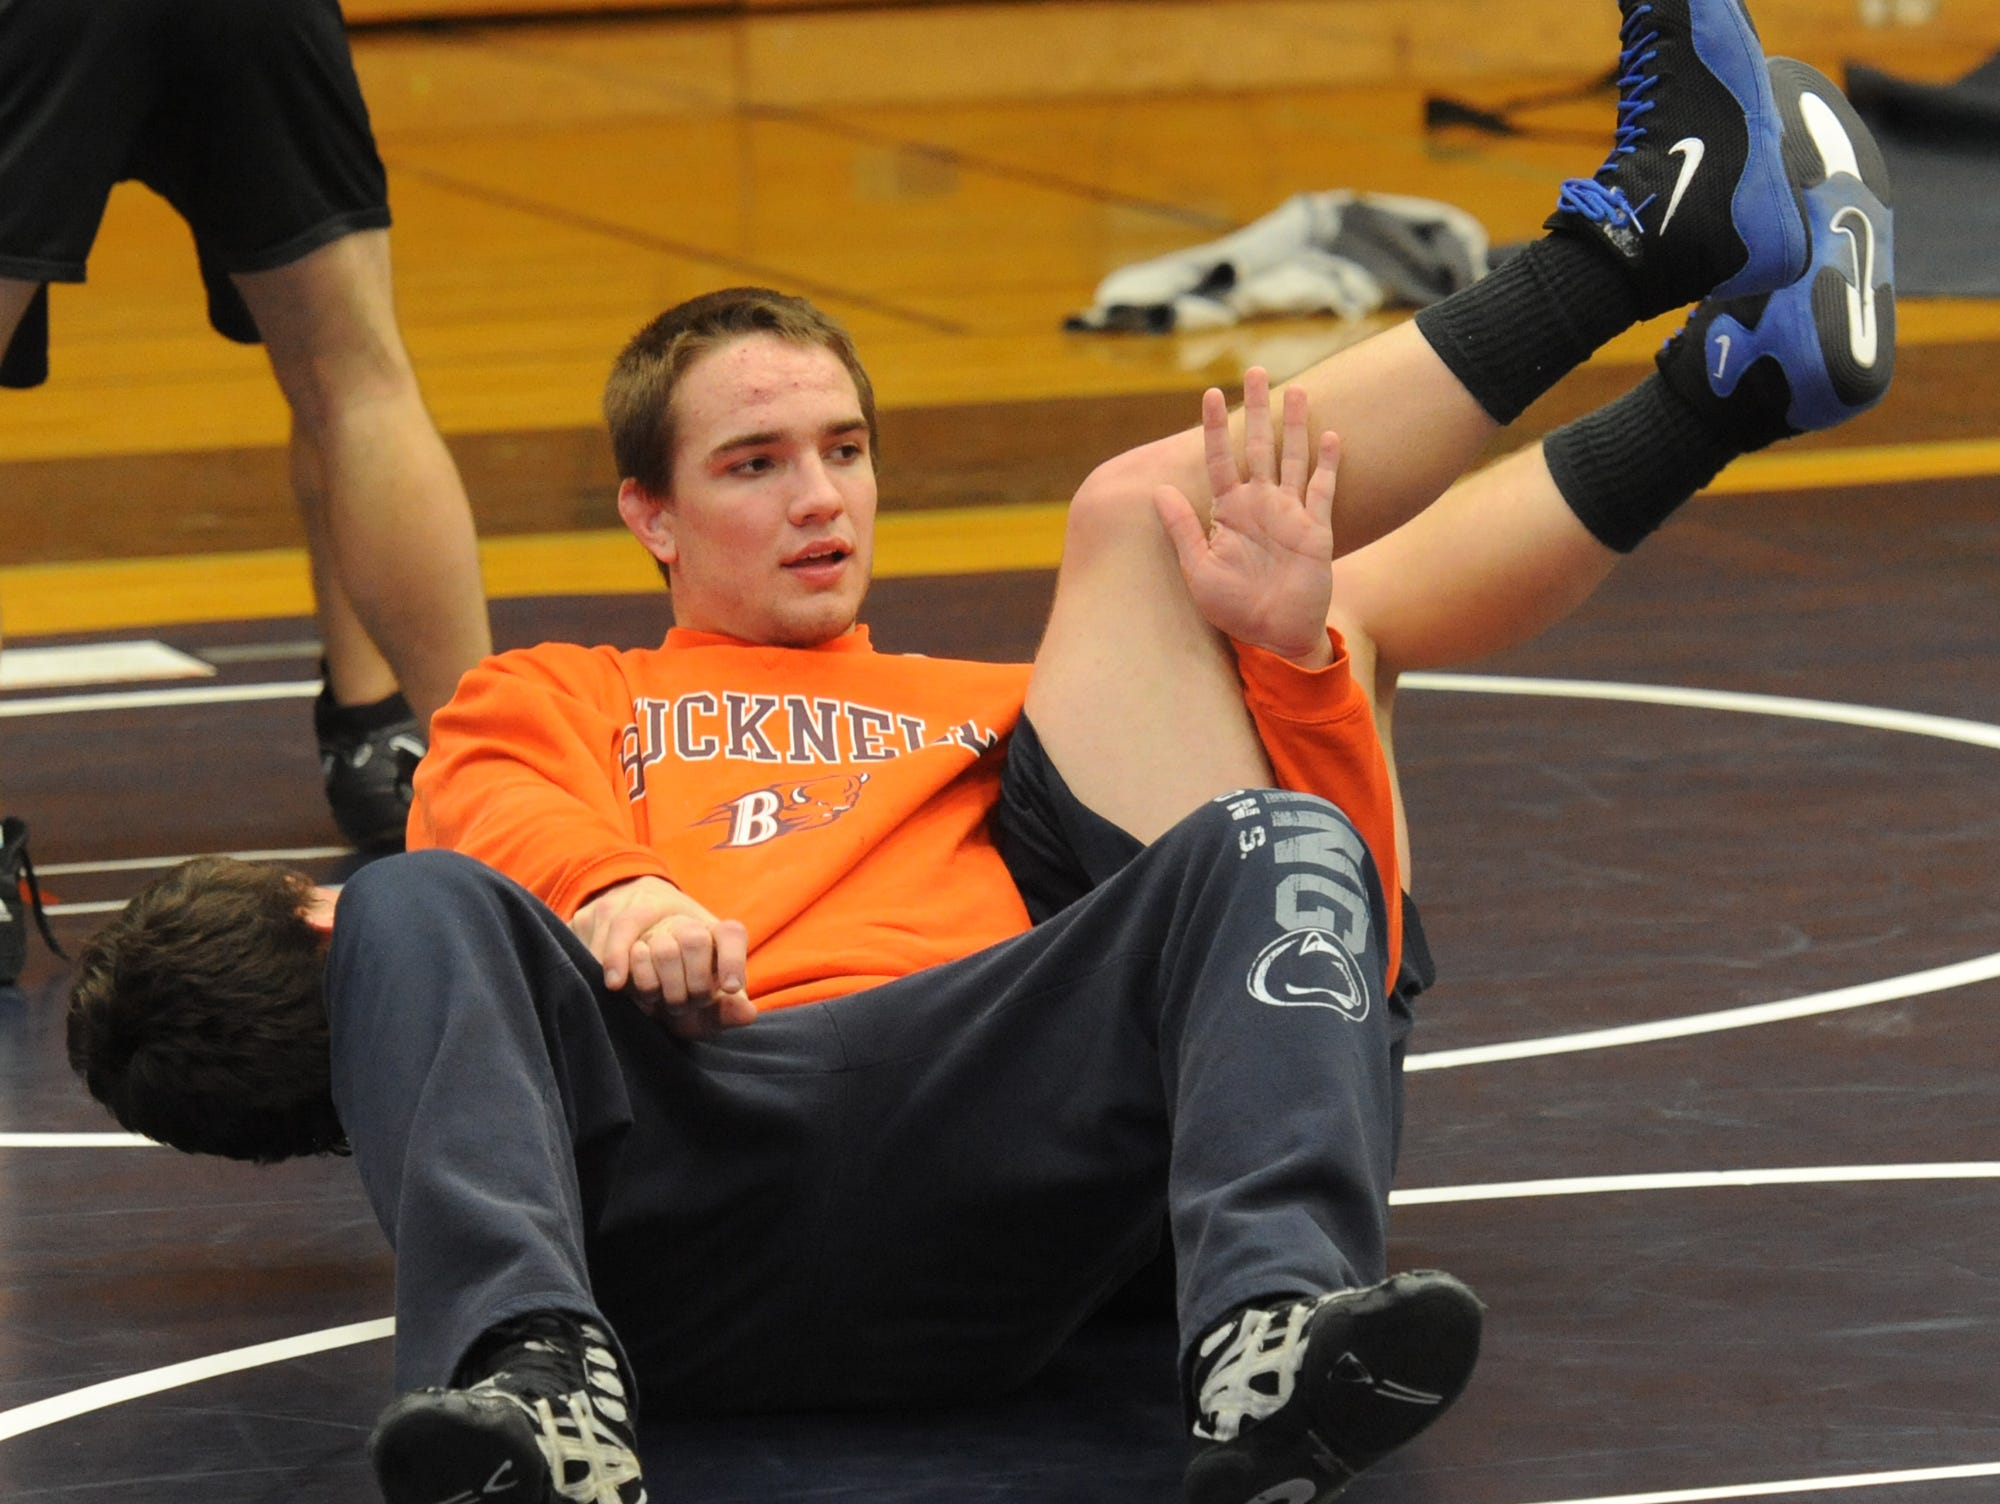 Enka alum Kacee Hutchinson was named the Citizen-Times All-WNC Wrestler of the Year in 2012 and 2013.